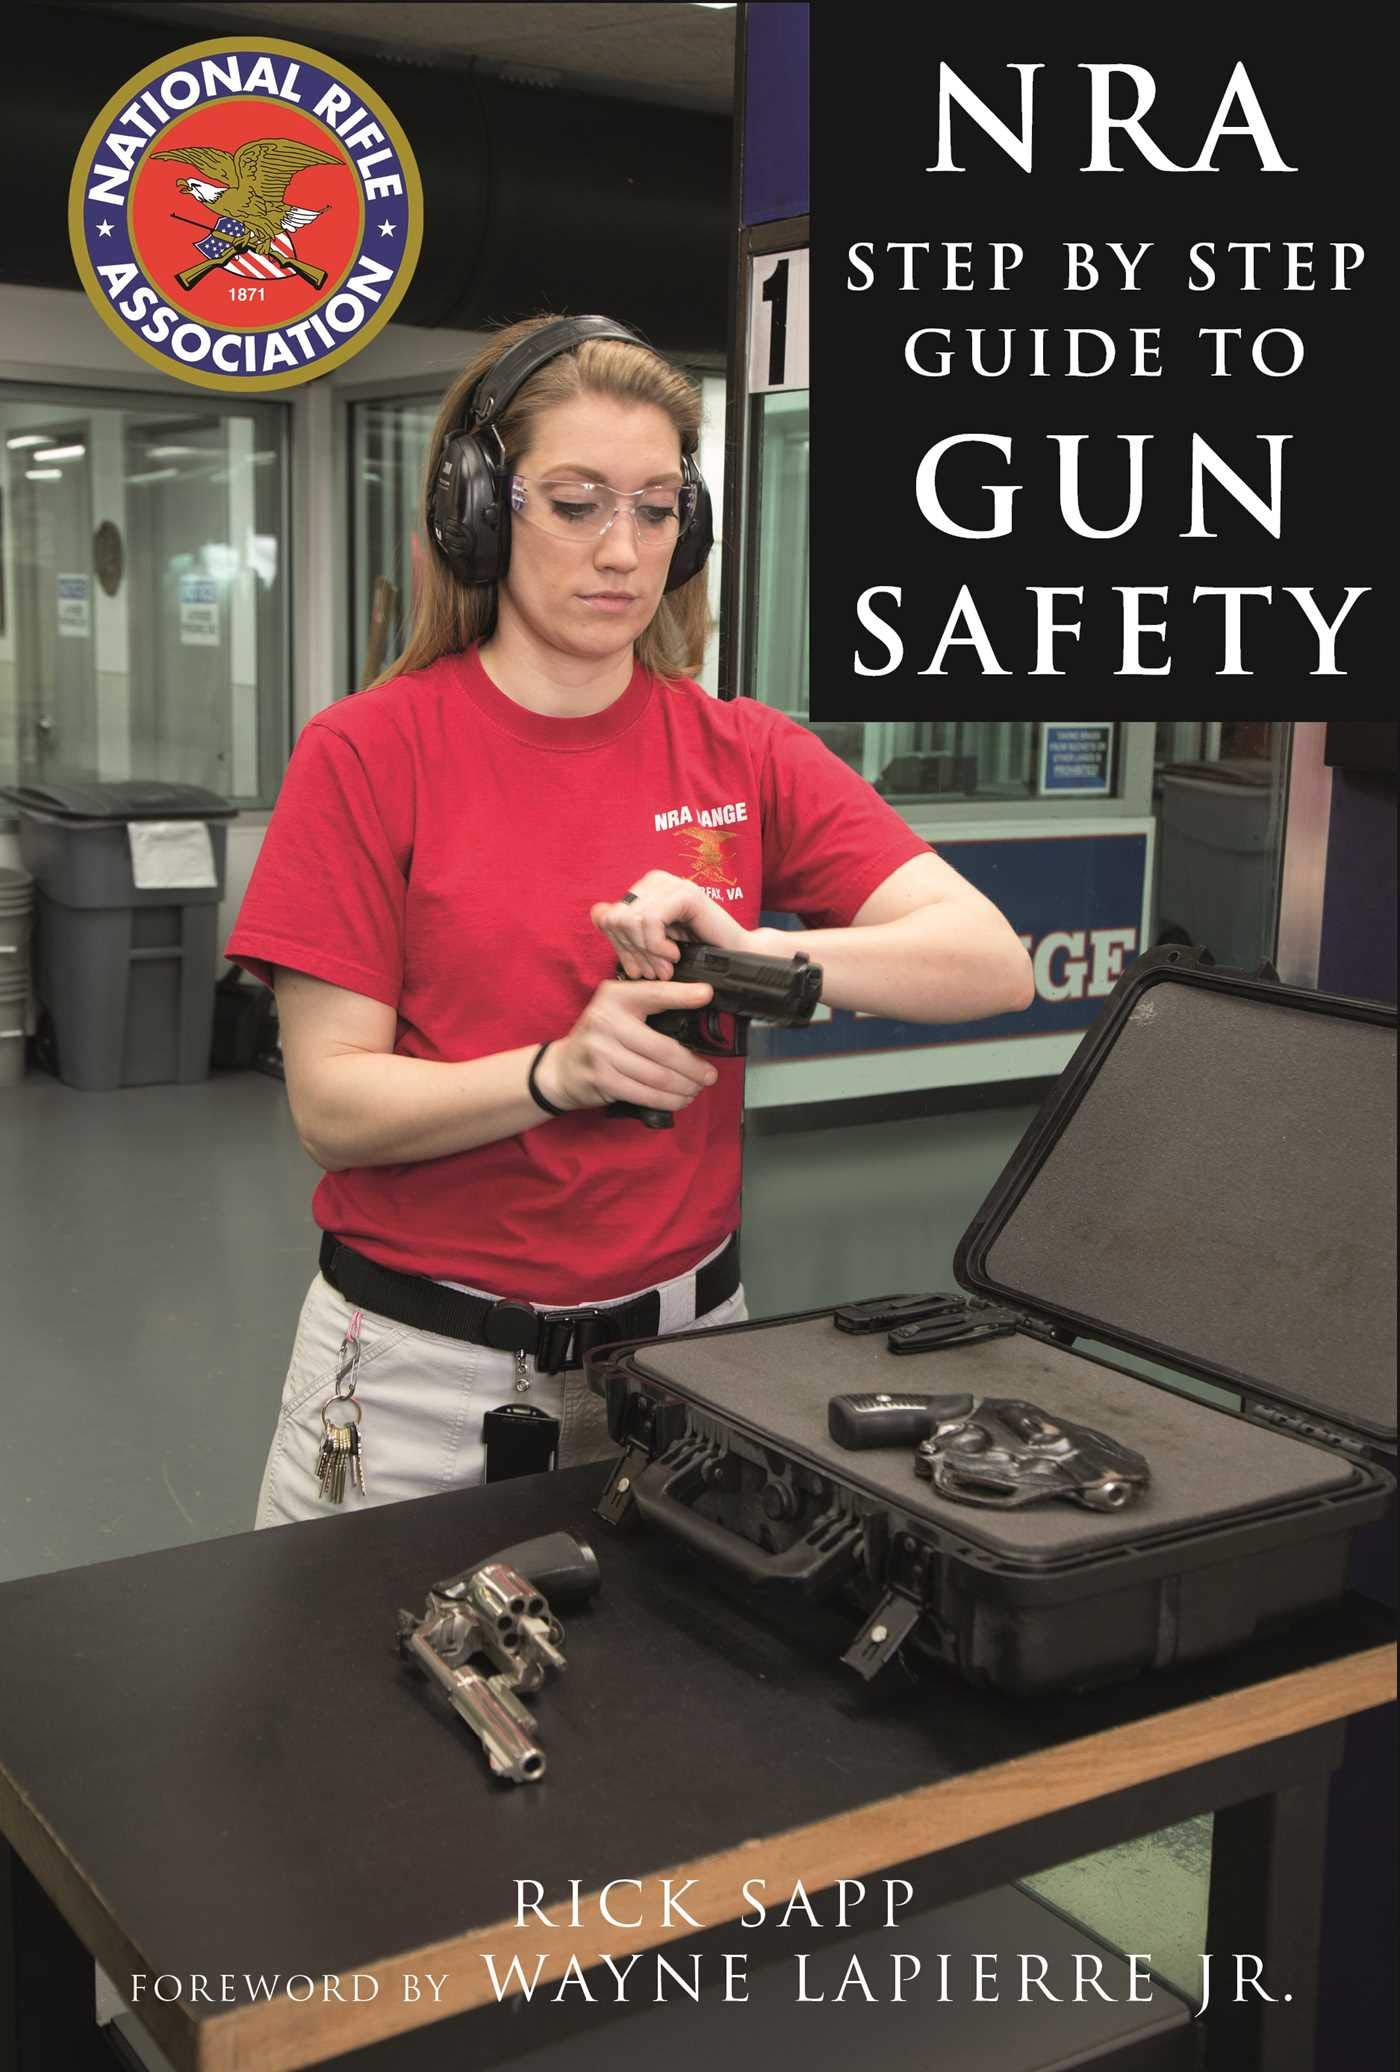 The NRA Step by Step Guide to Gun Safety: How to Care For, Use, and Store Your Firearms